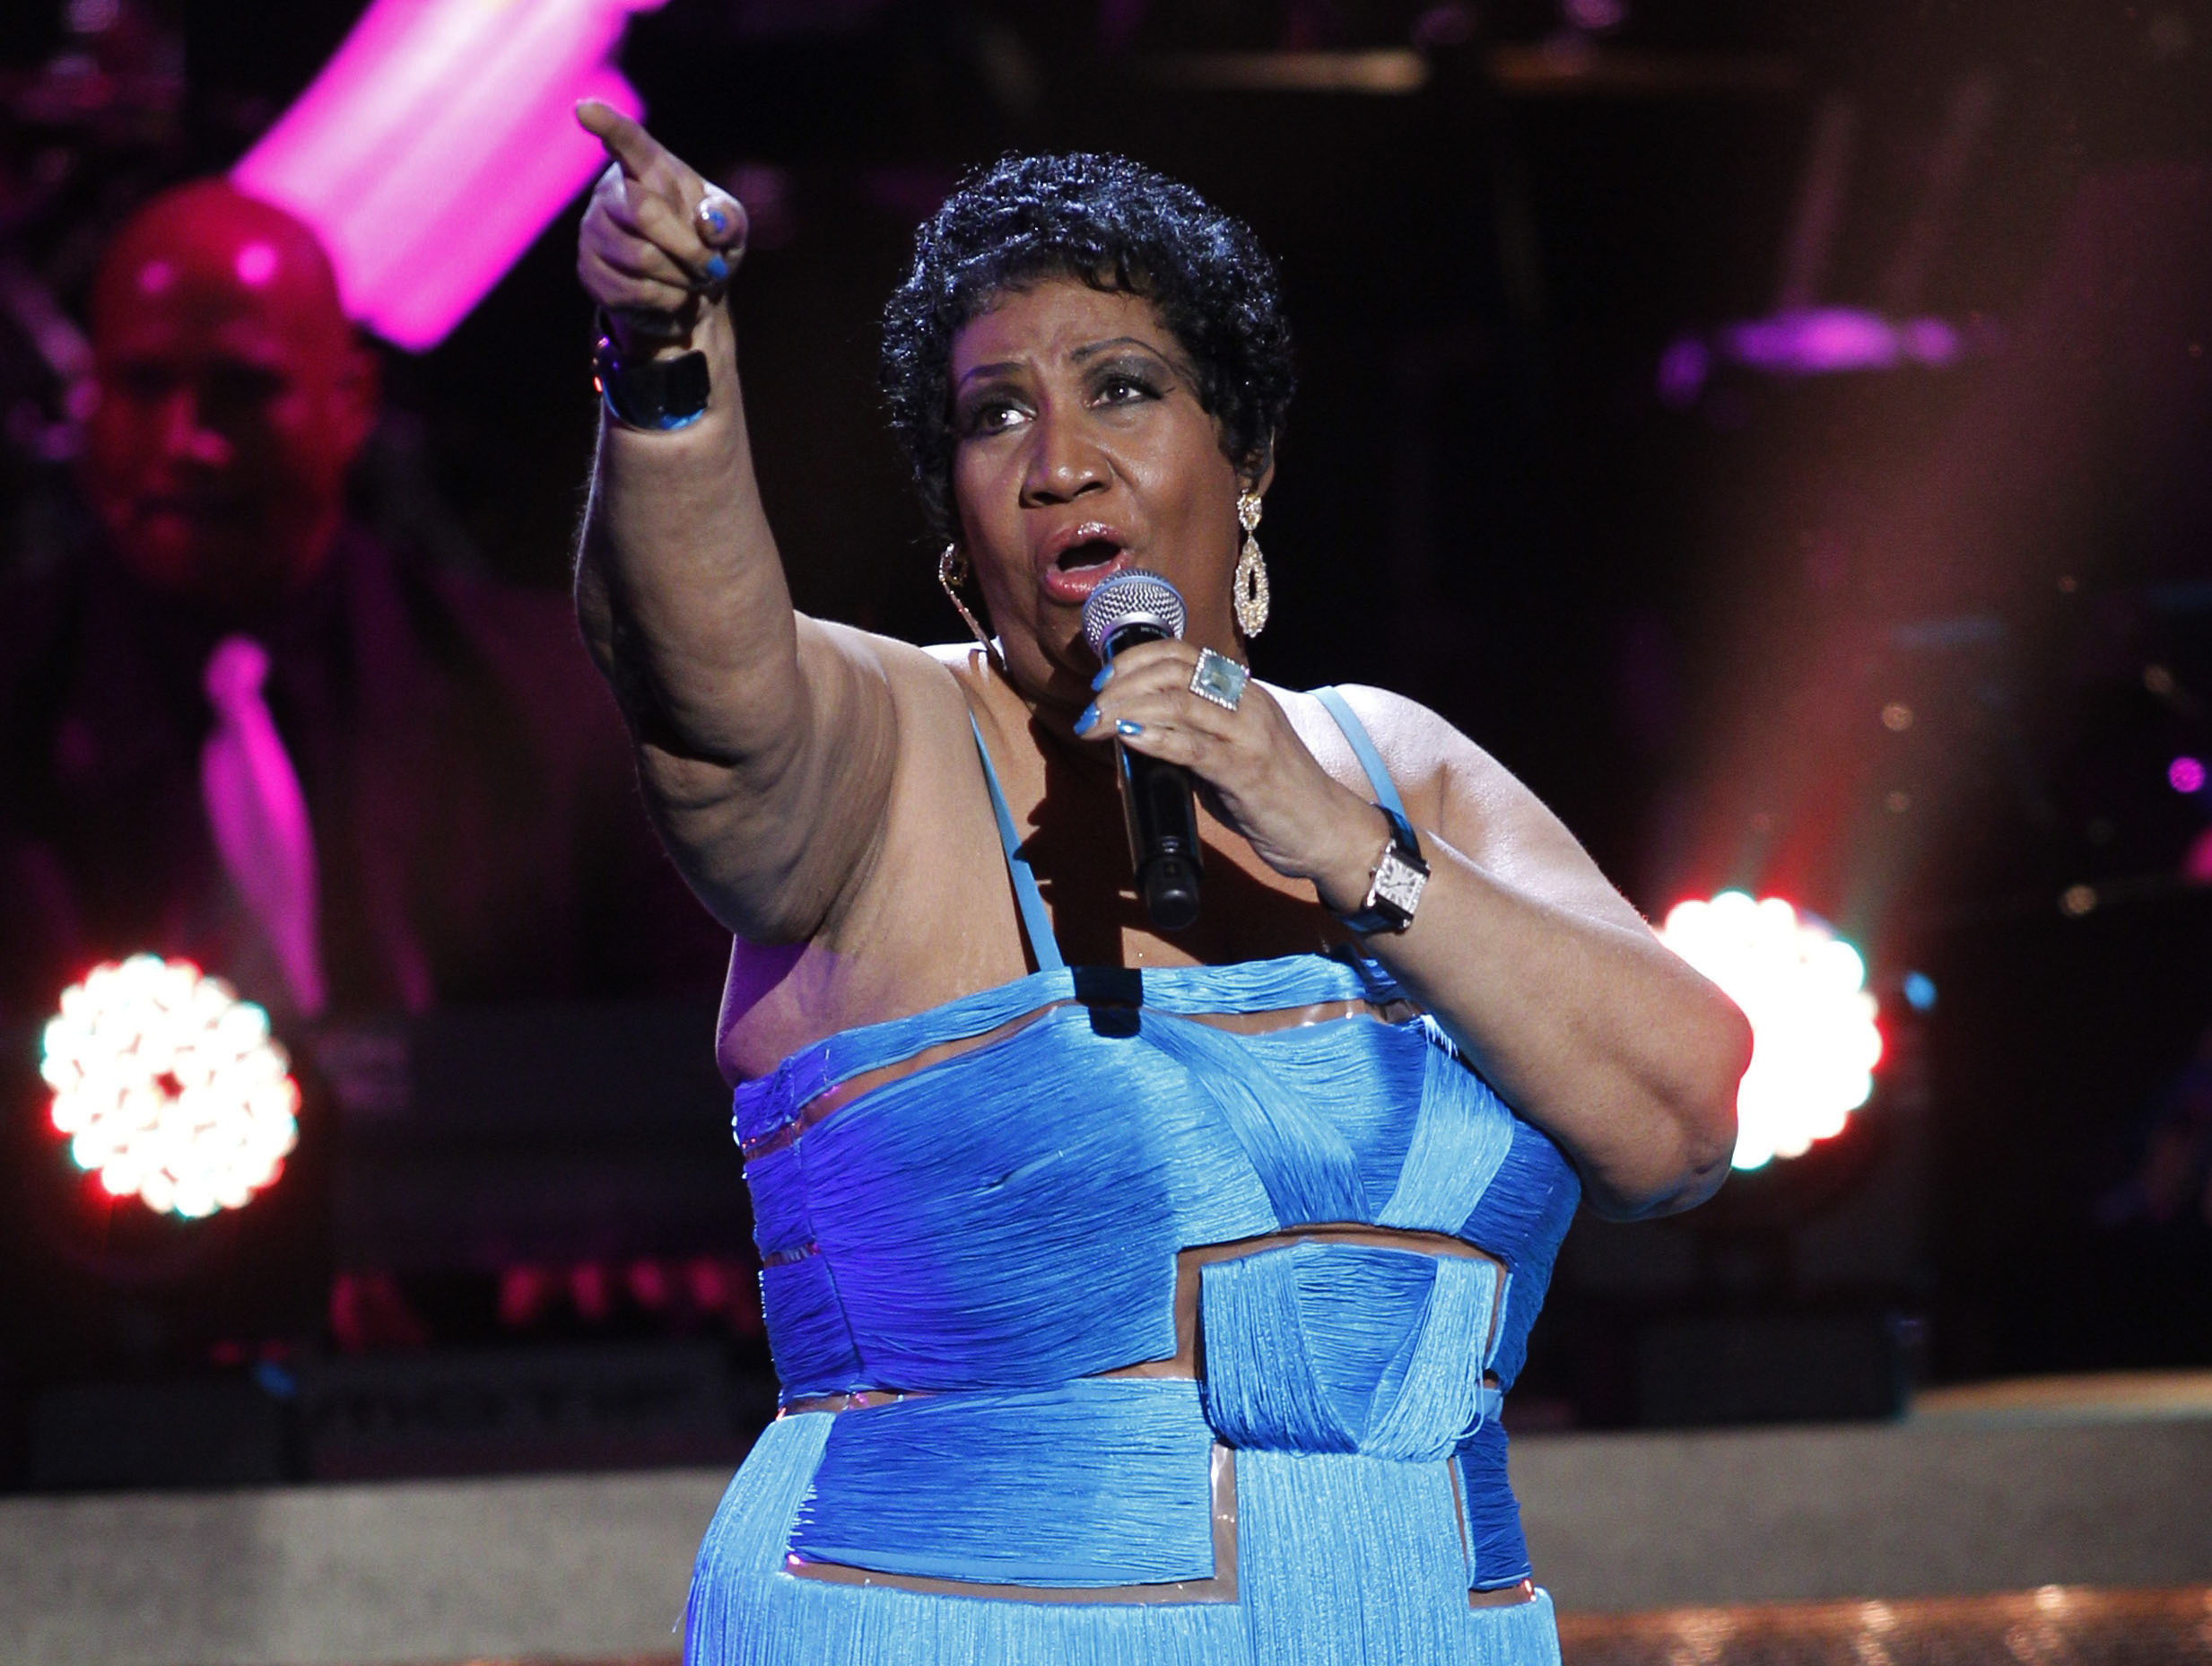 Need stamps in Detroit? Go to Aretha Franklin post office